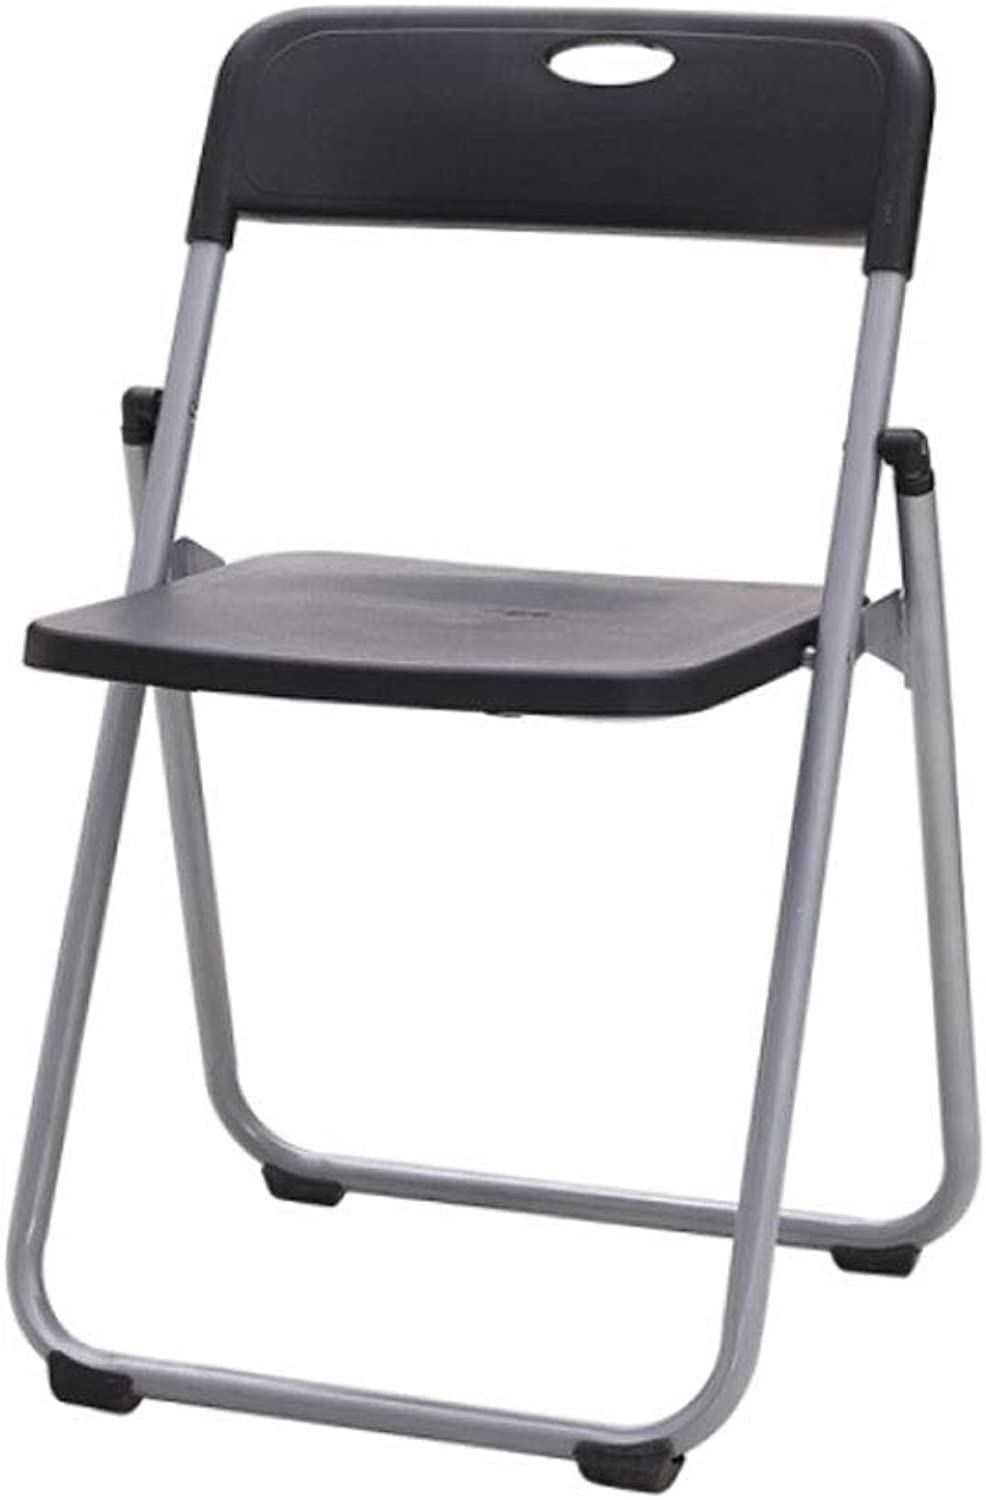 AJZGFDining Chair, Kitchen Chair Folding Chair Home Office Computer Chair Leisure Chair